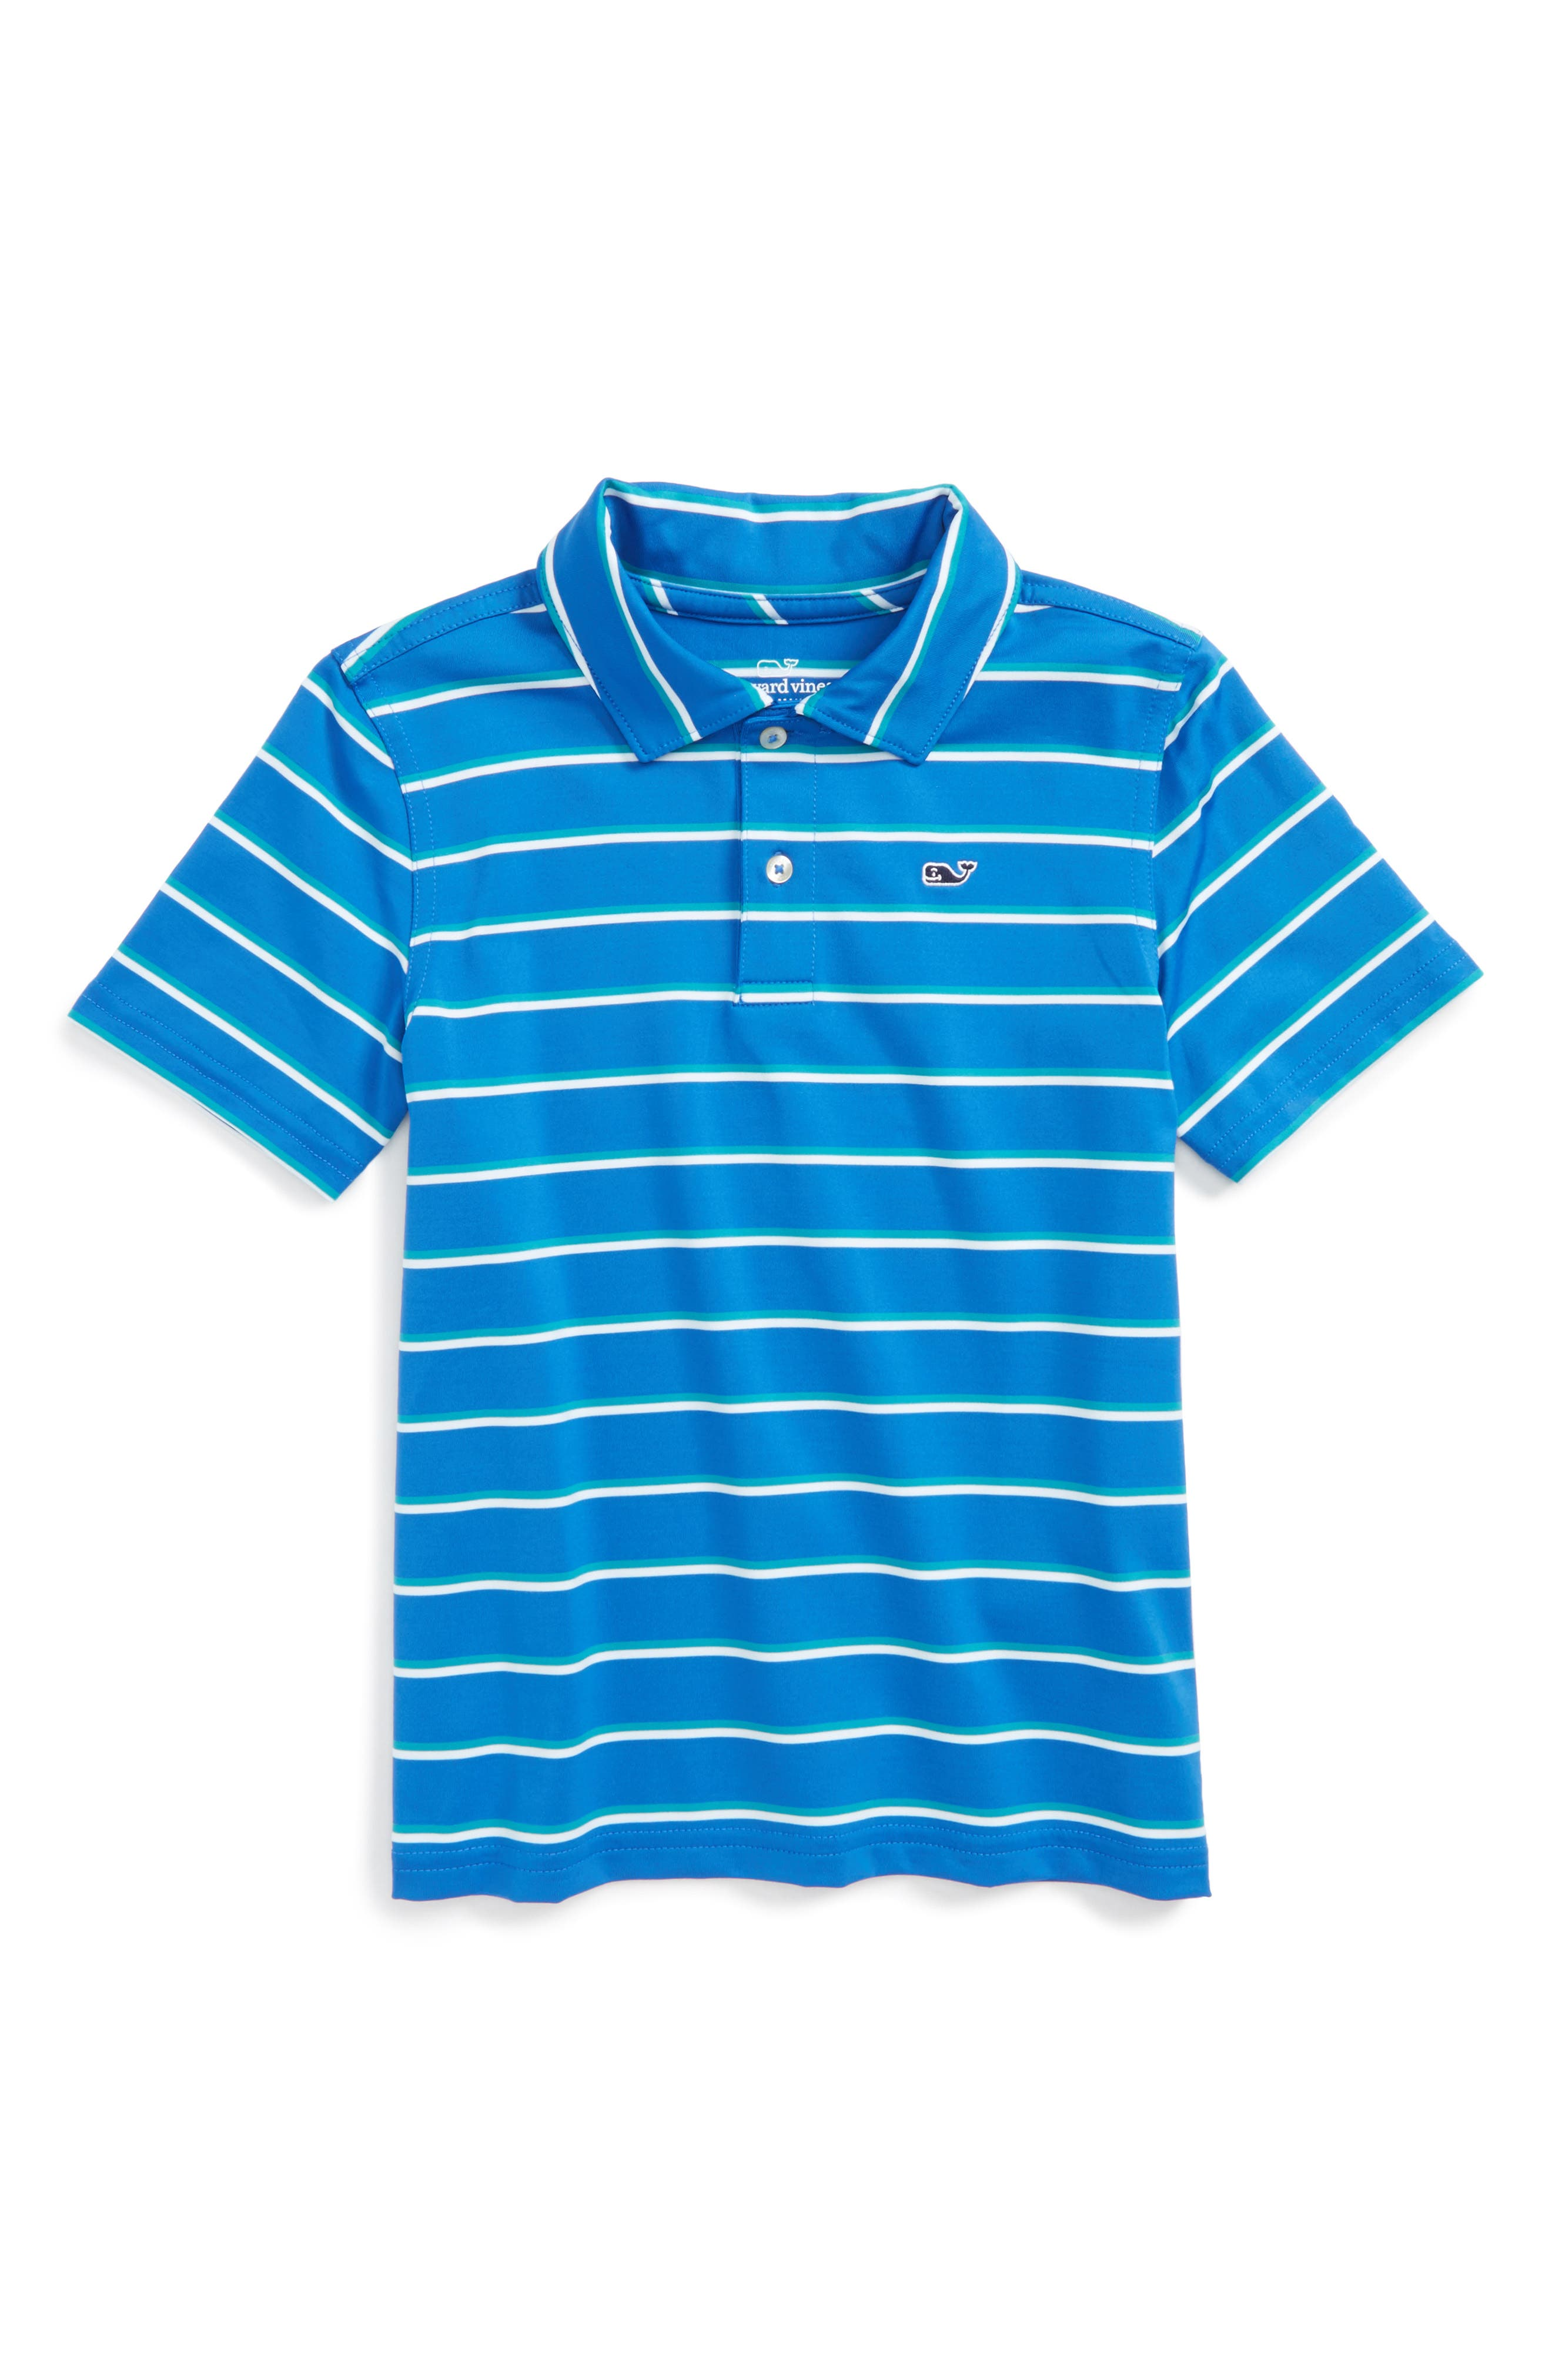 vineyard vines Open Ground Stripe Performance Polo (Toddler Boys & Little Boys)